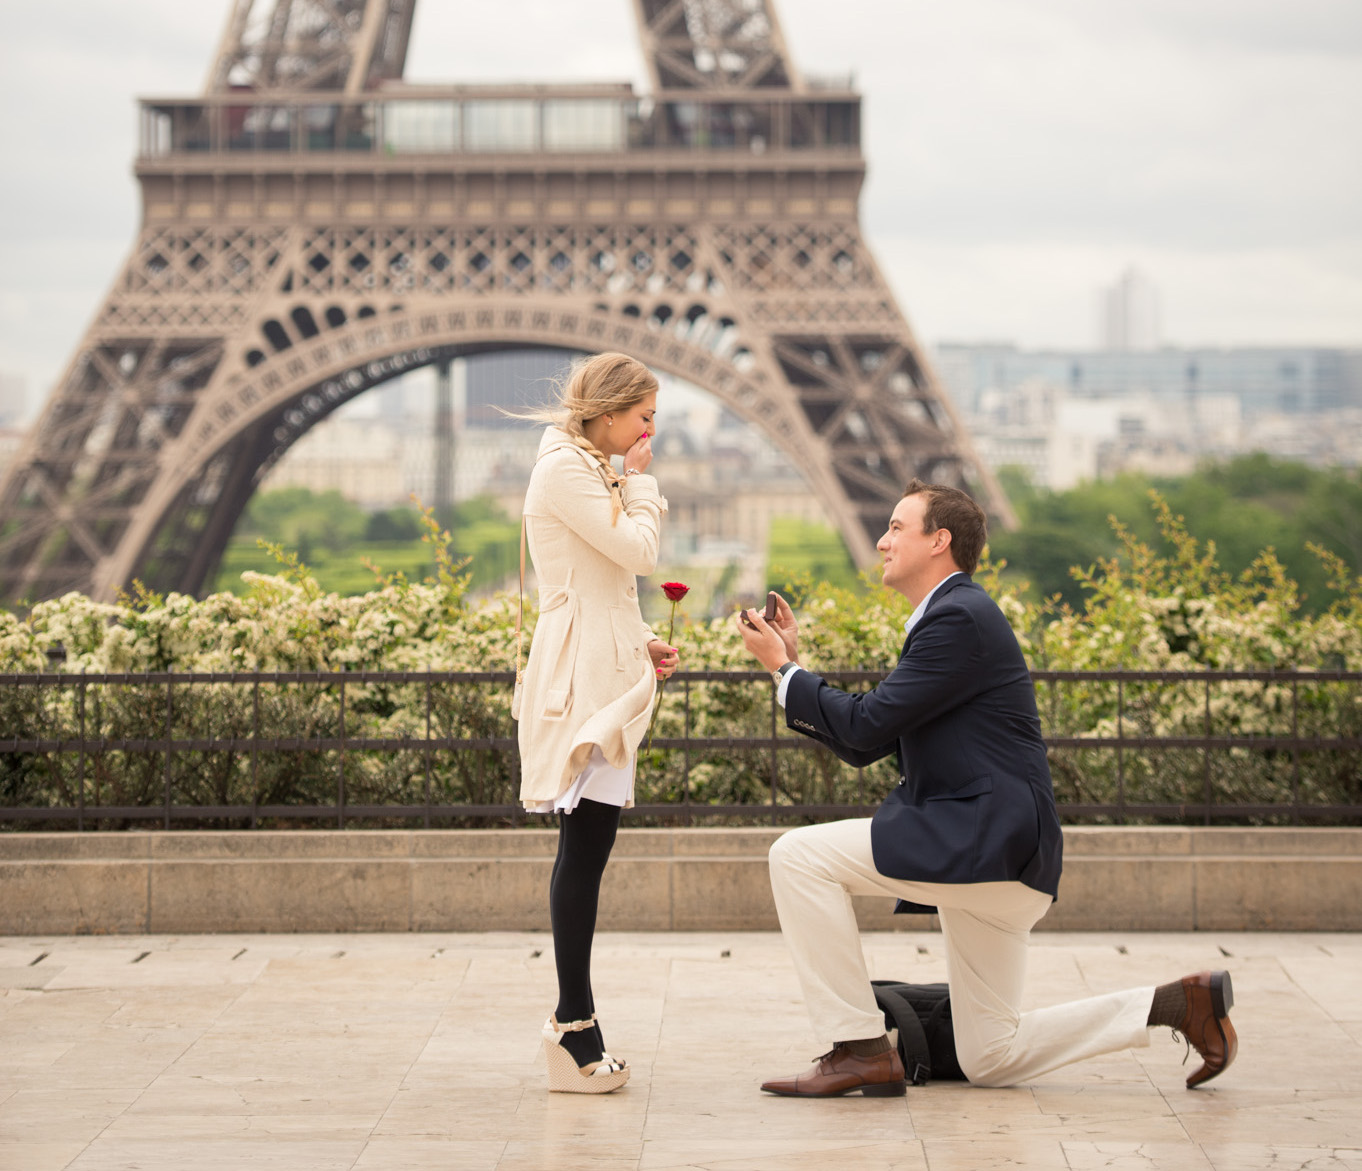 Engagement Ring Insurance Abroad